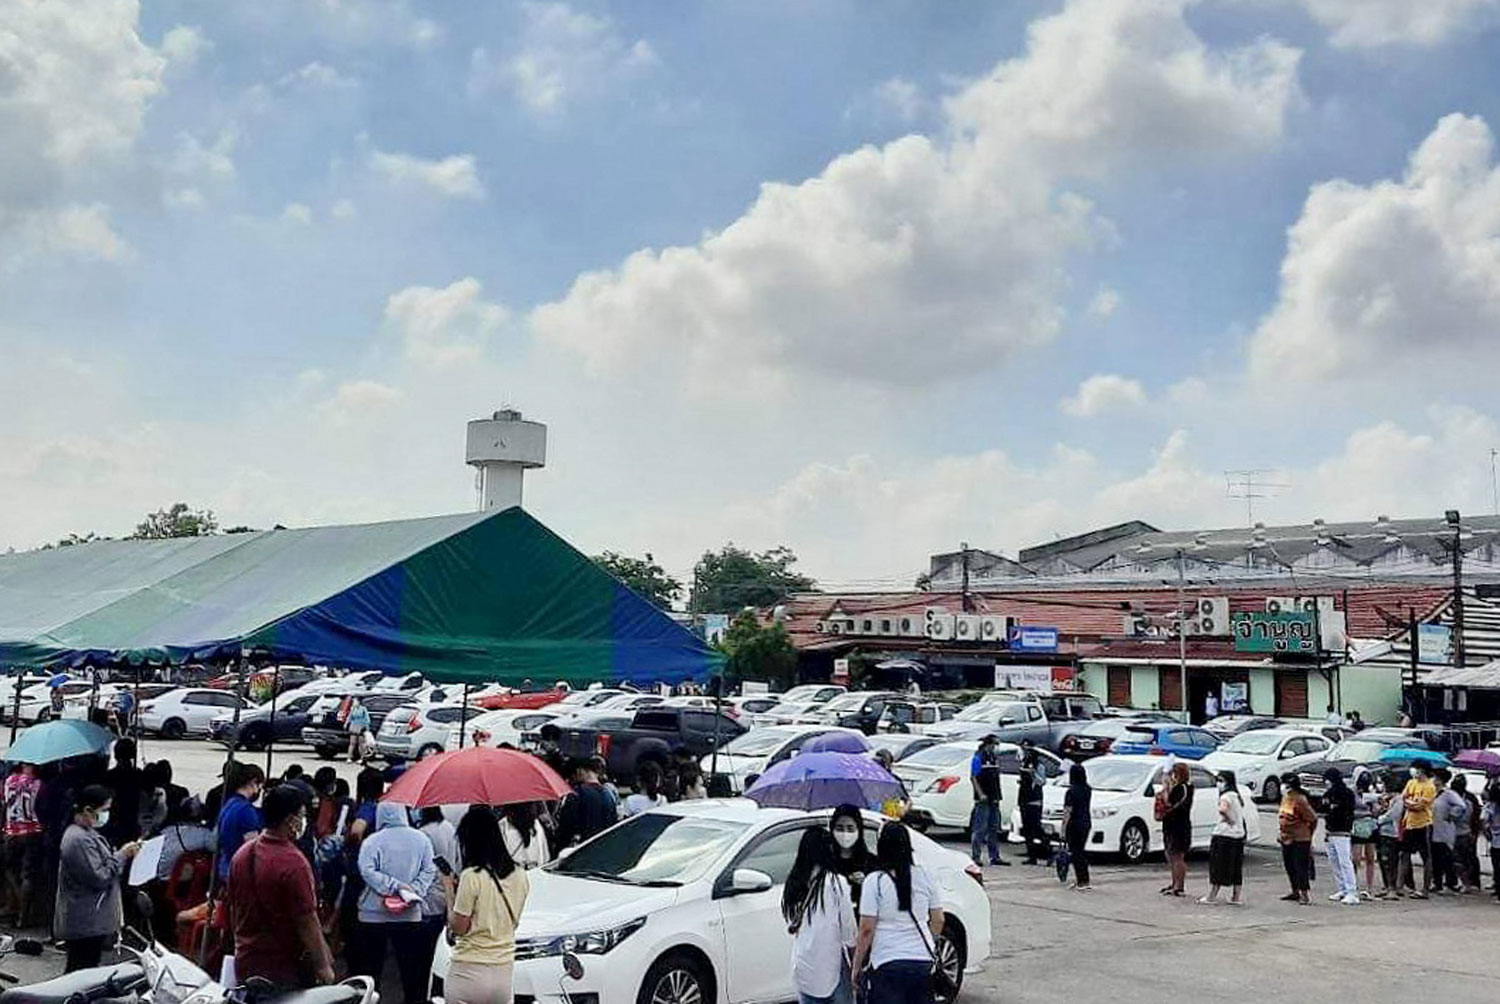 People gather at the shutdown Central Shrimp Market in Ayutthaya's Phra Nakhon Si Ayutthaya district on April 18 to get Covid-19 tests. (Photo: Sunthon Pongpao)